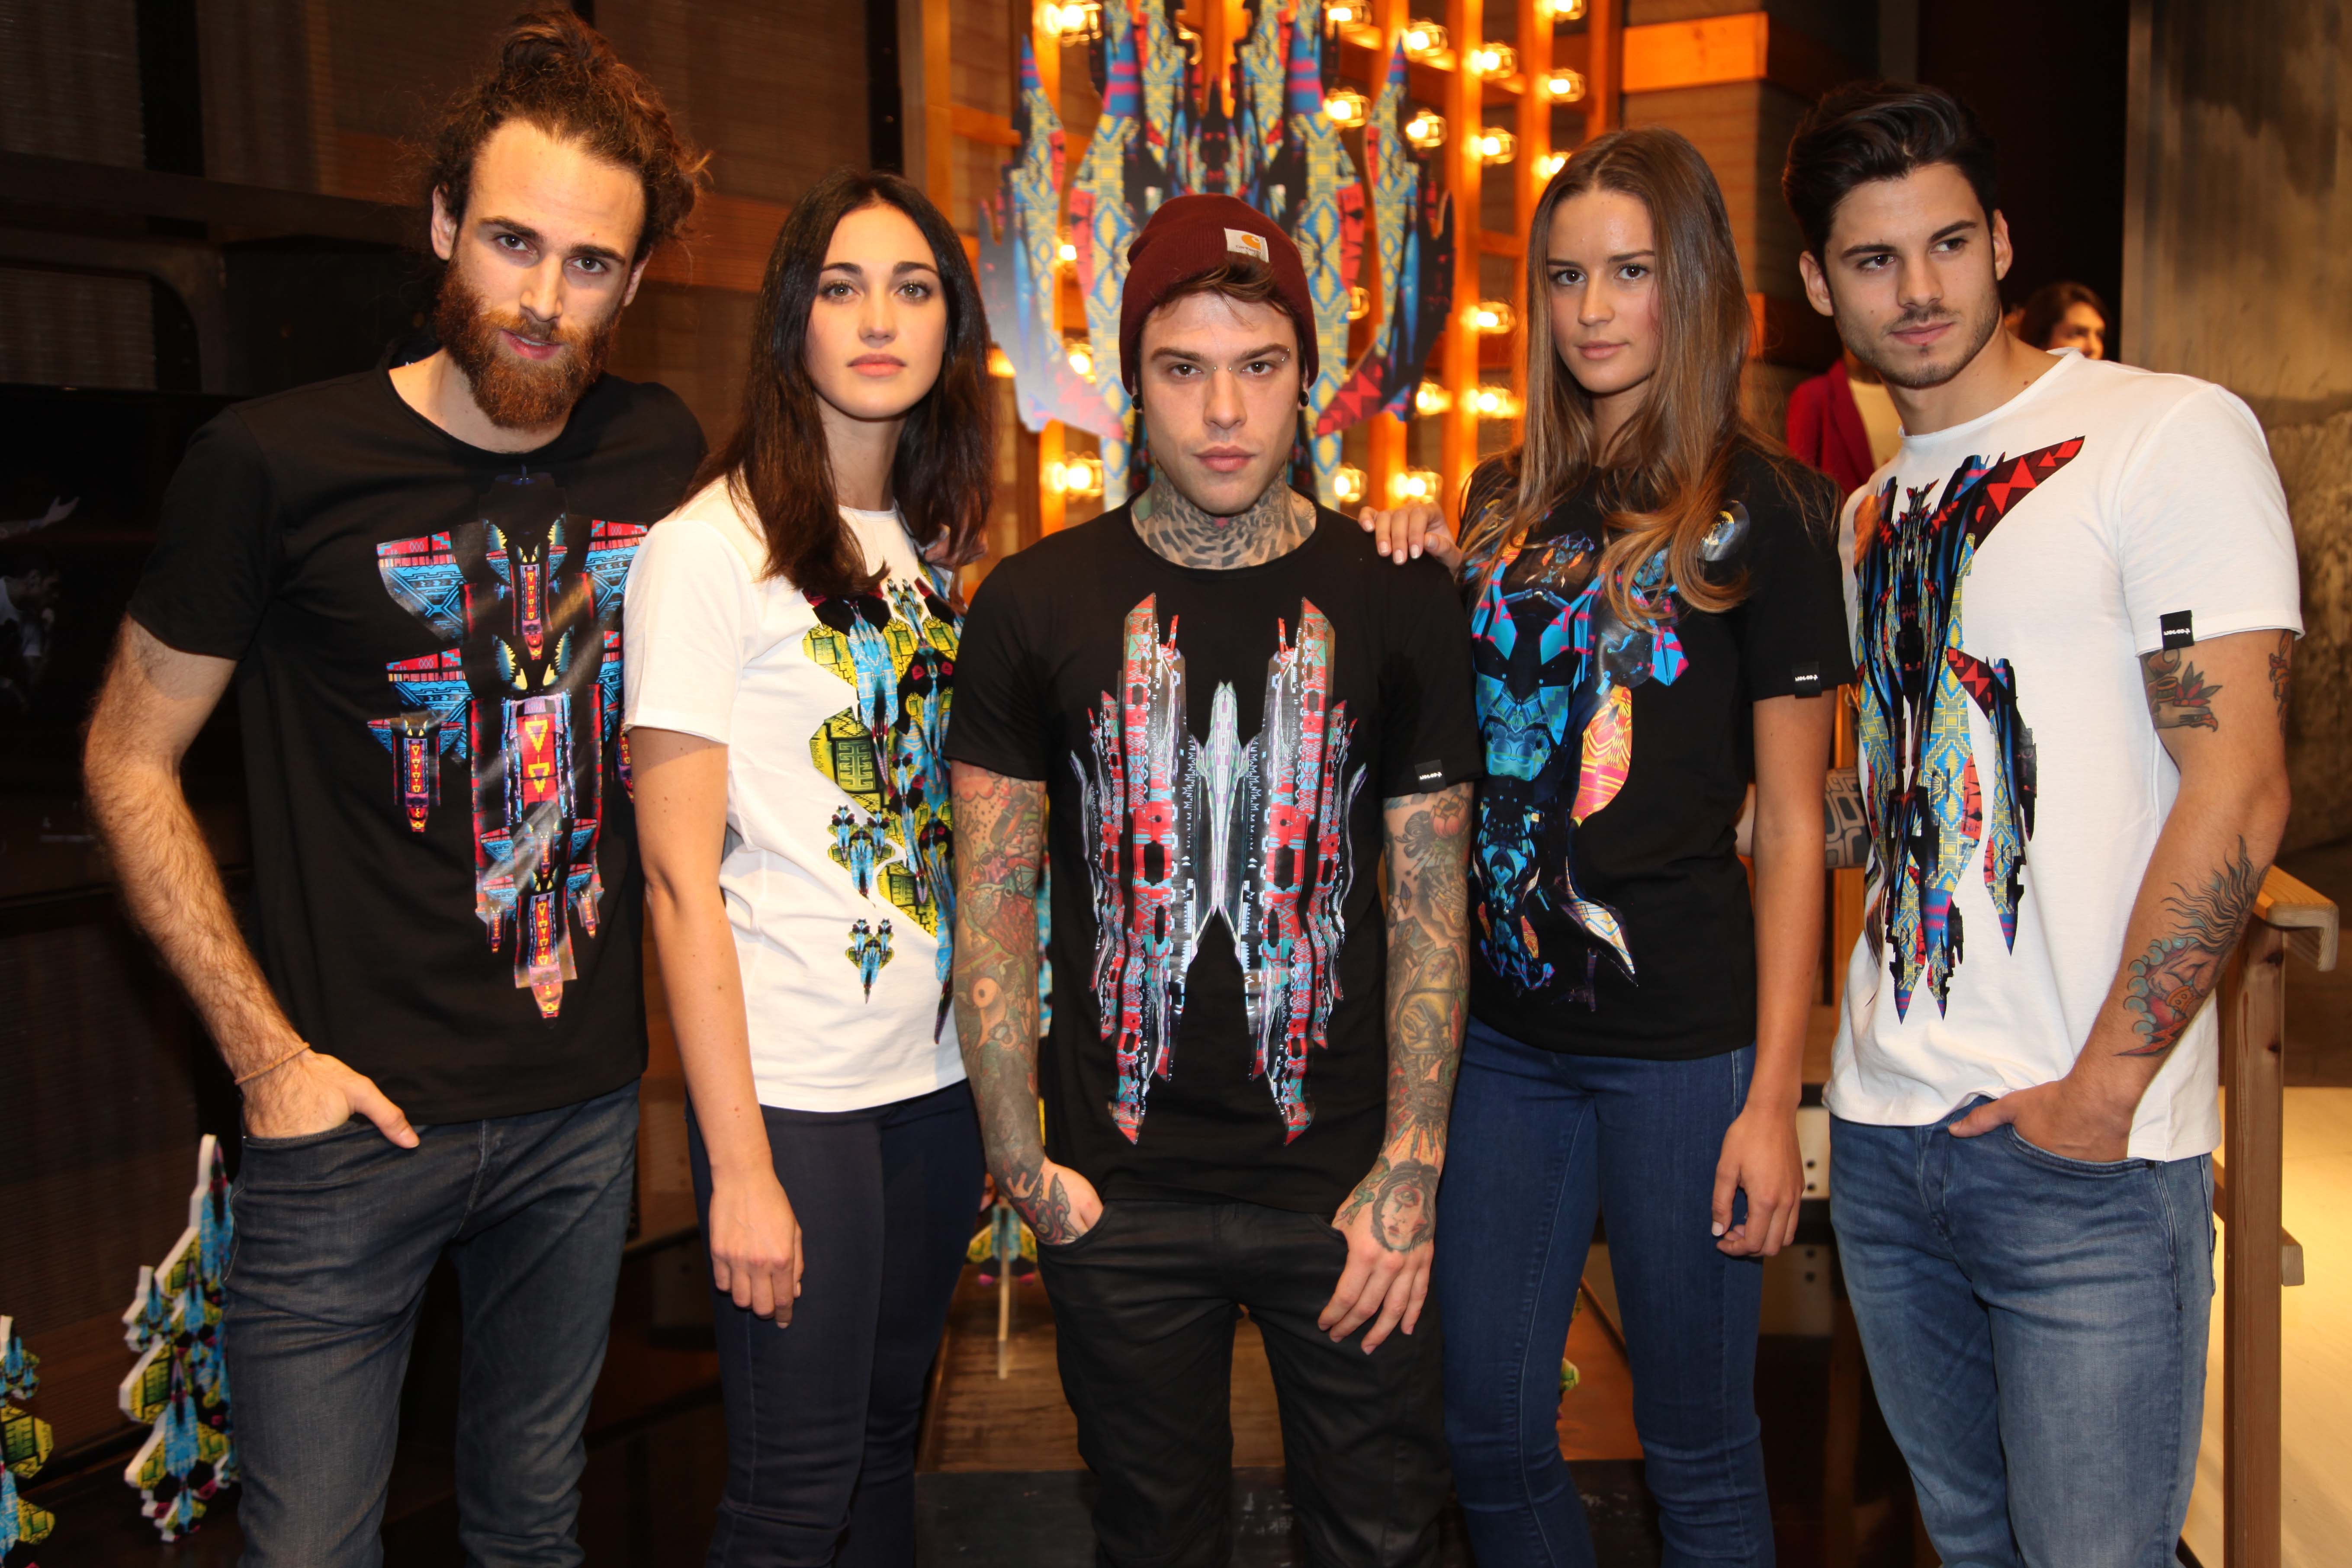 Fedez (center) surrounded by models wearing some of his graphic tees for Replay.